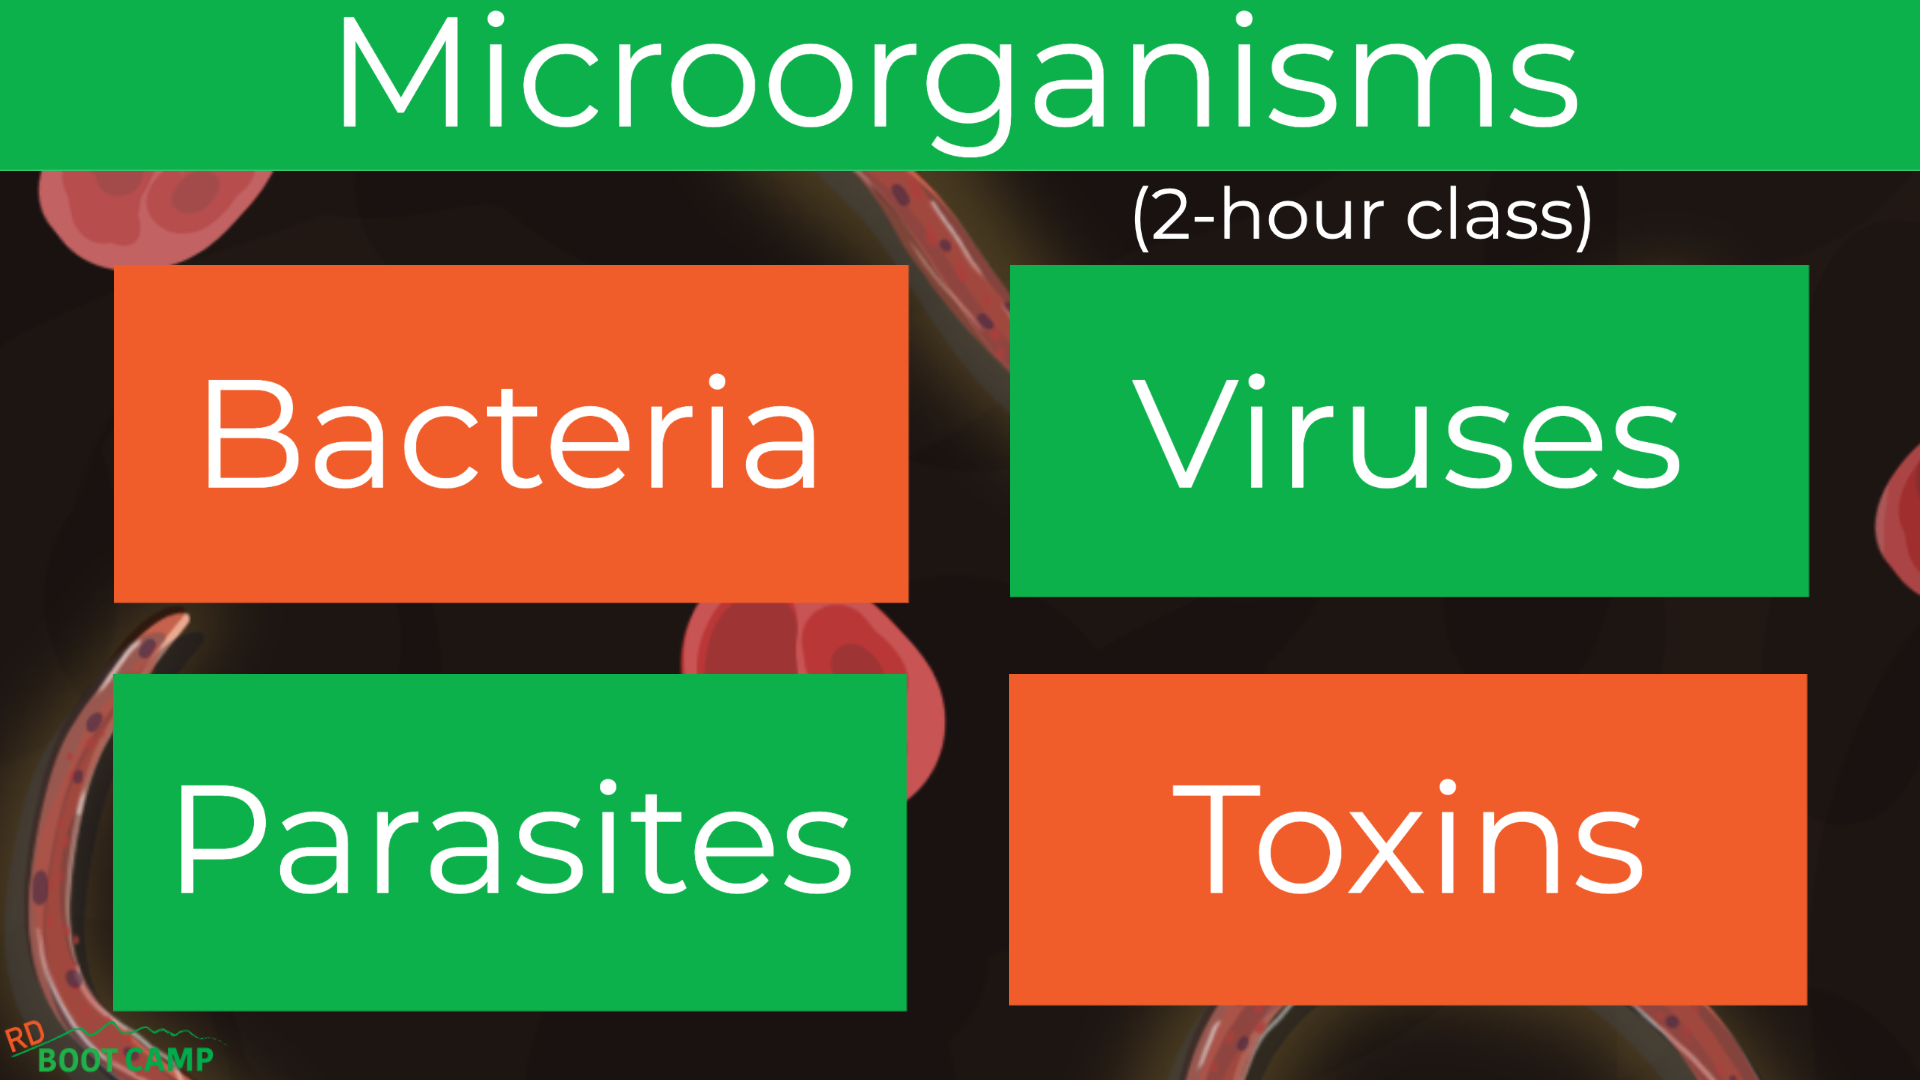 Microorganisms: Bacteria, Viruses, Parasites, and Toxins Explained! (2-hour class) class header